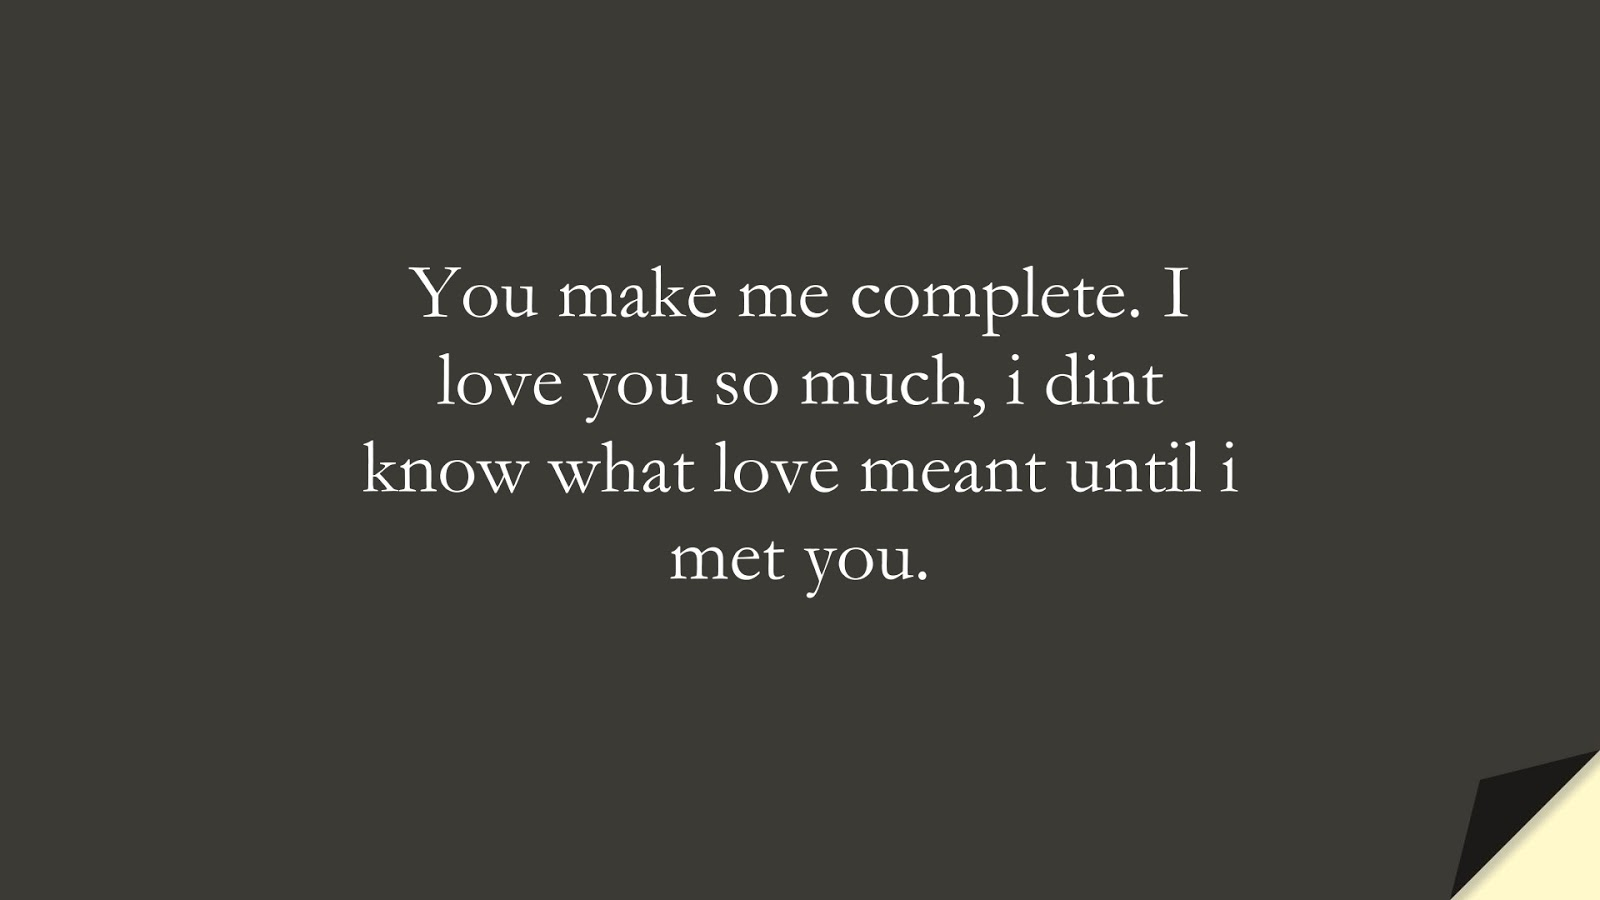 You make me complete. I love you so much, i dint know what love meant until i met you.FALSE